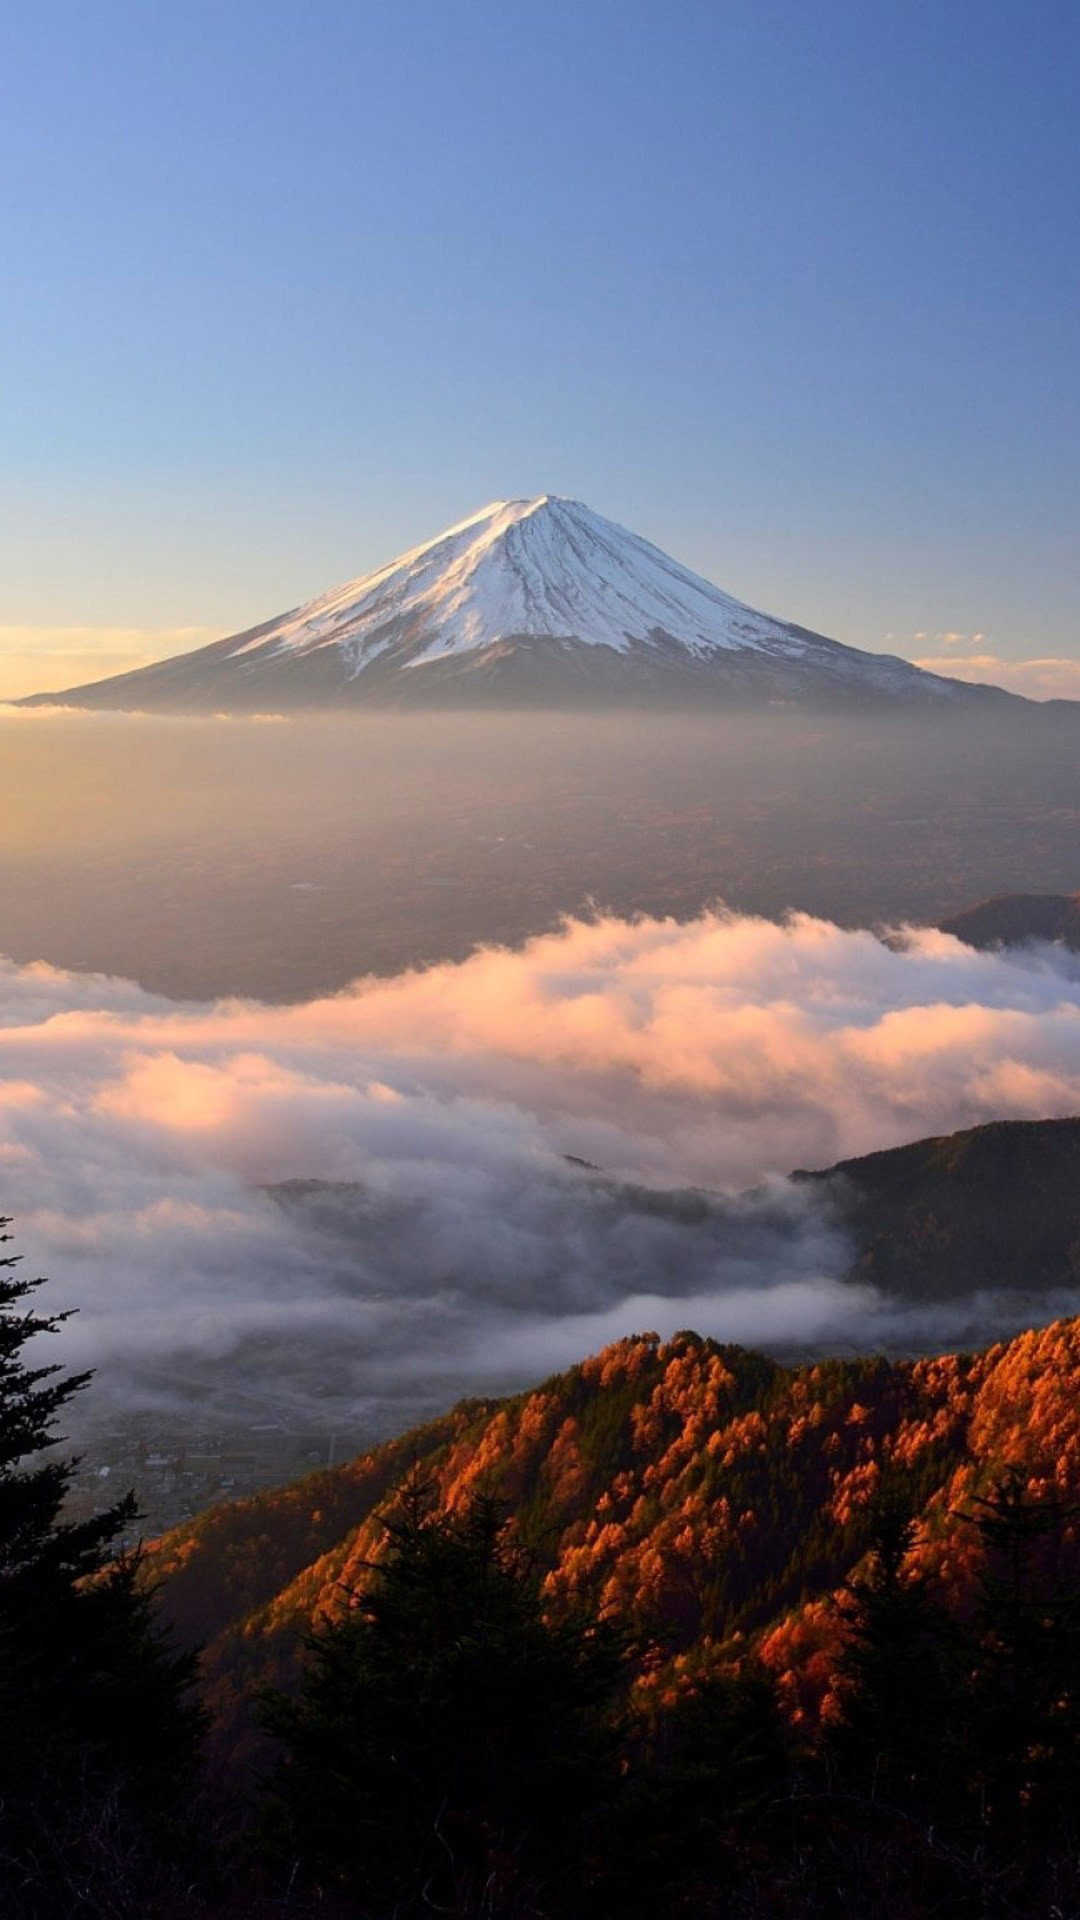 download Mount Fuji Hd Qhd Wallpaper [1080x1920] [1080x1920 1080x1920